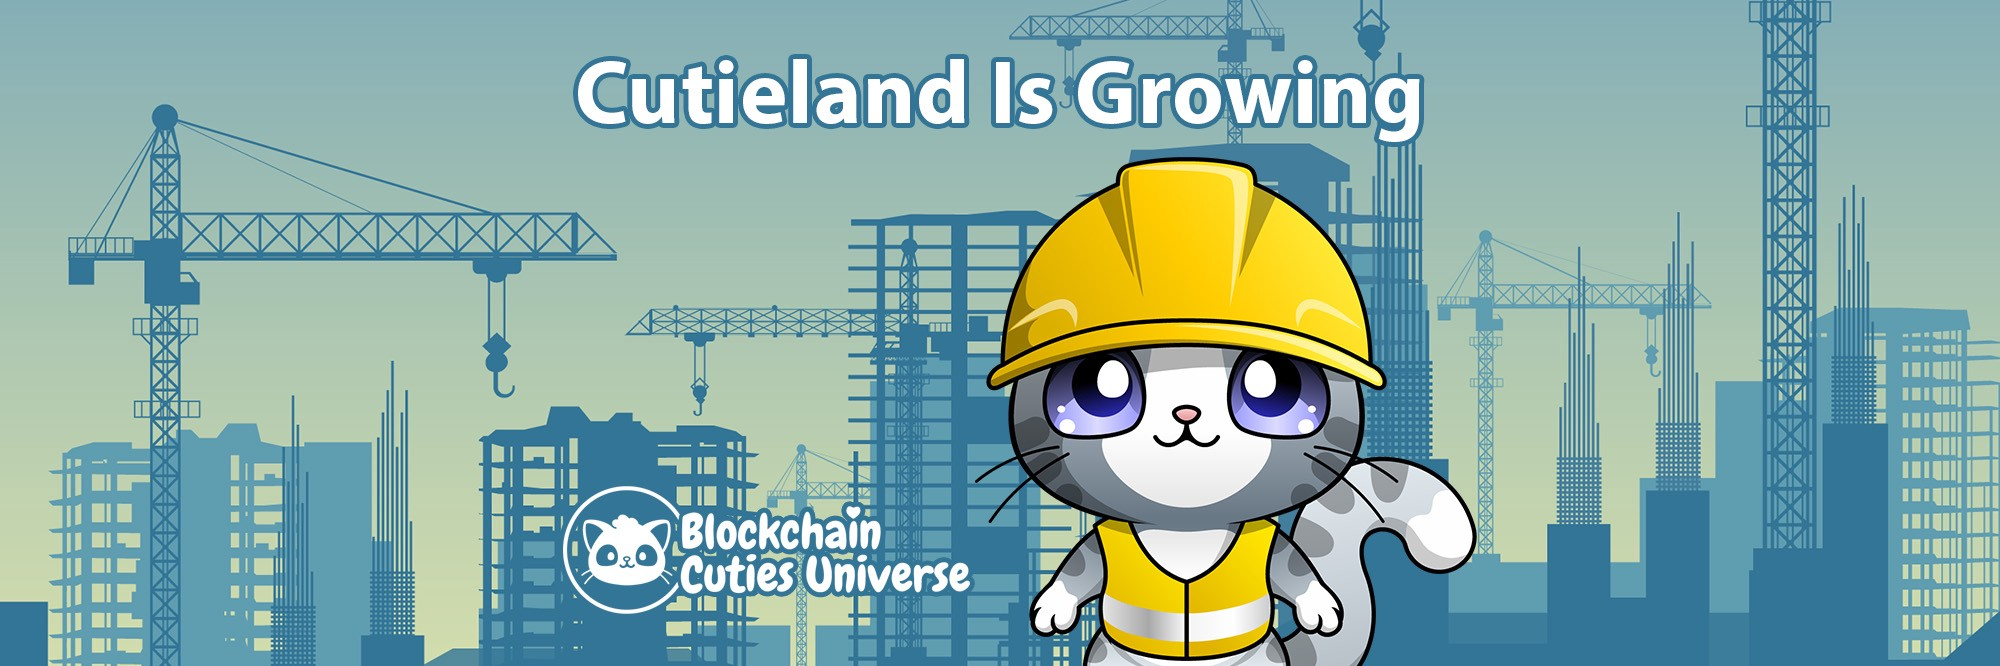 Cutieland Reached a Major Milestone